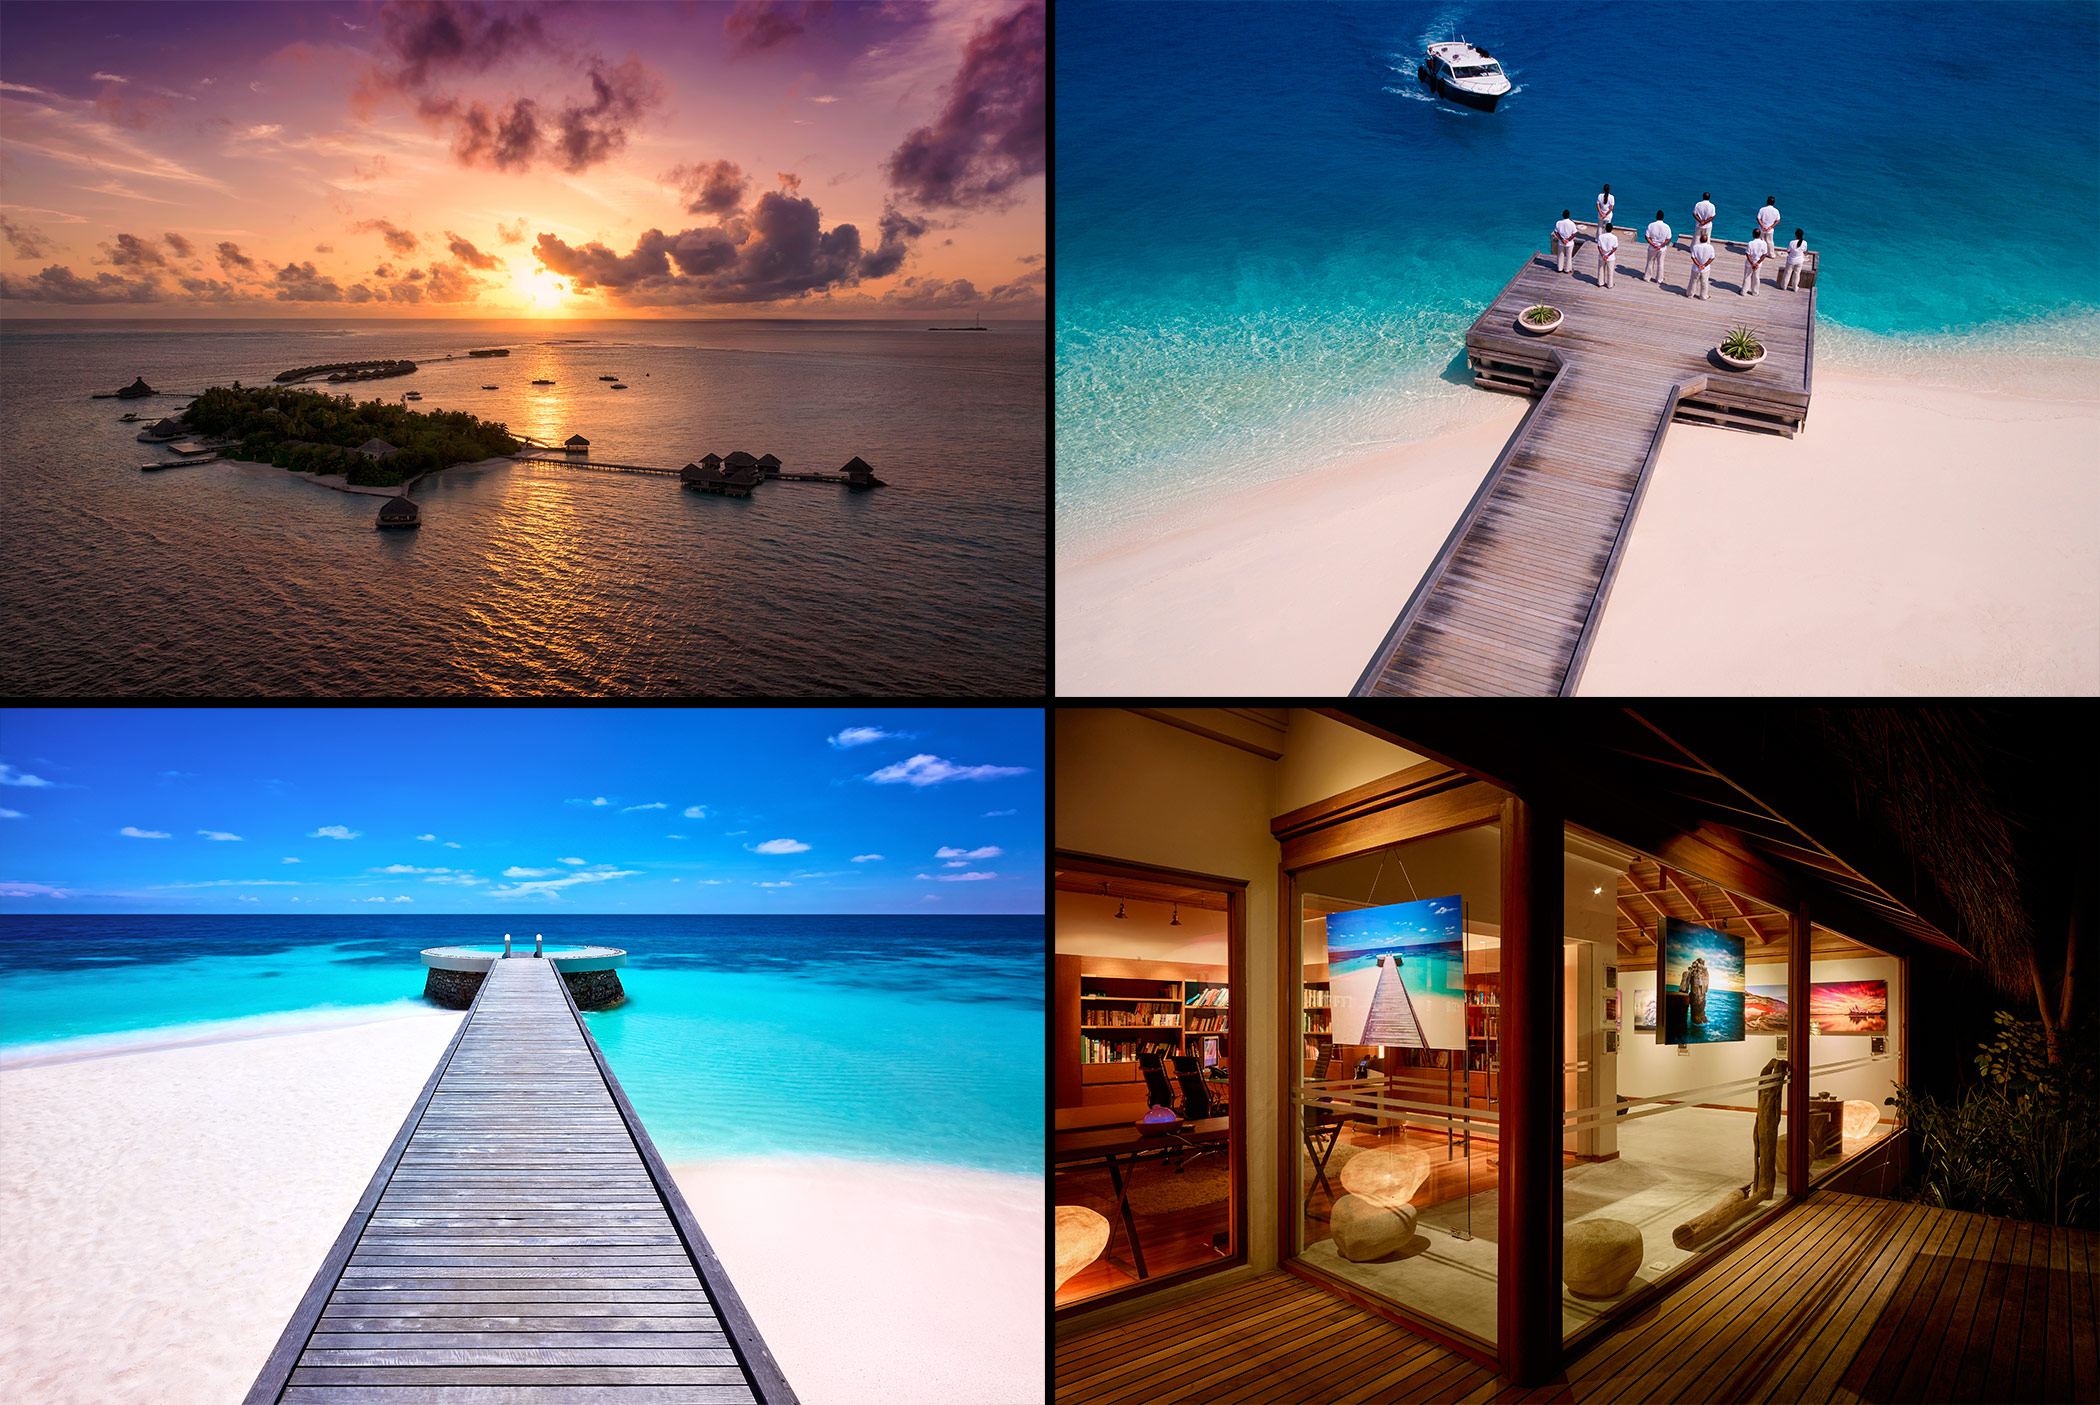 featured image bts behind scenes building worlds most exclusive gallery maldives pr hf huvafen fushi paul reiffer